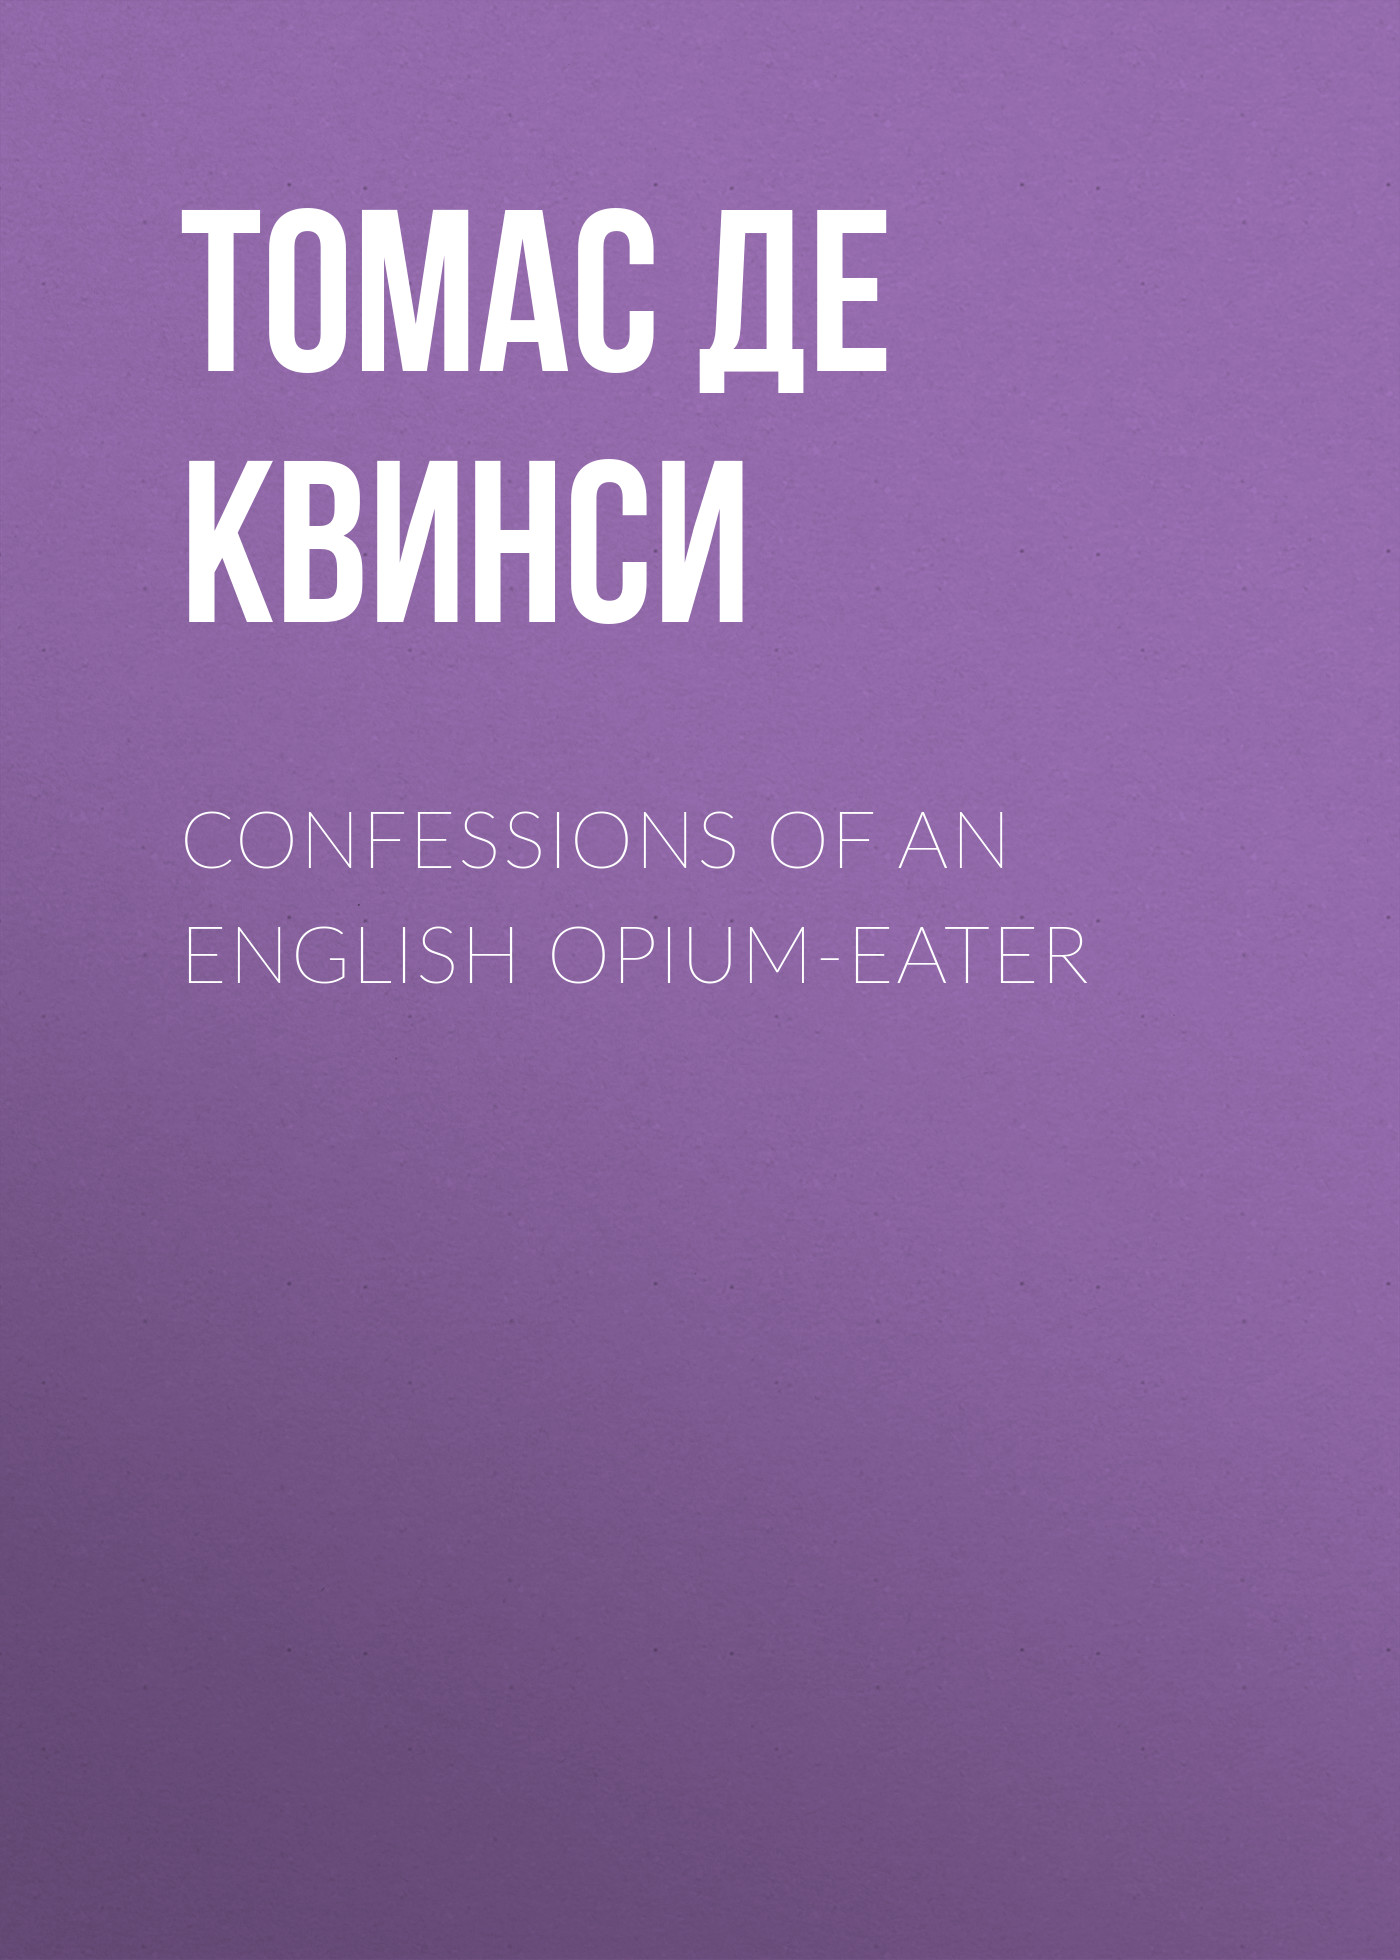 Томас де Квинси Confessions of an English Opium-Eater томас де квинси the uncollected writings of thomas de quincey vol 1